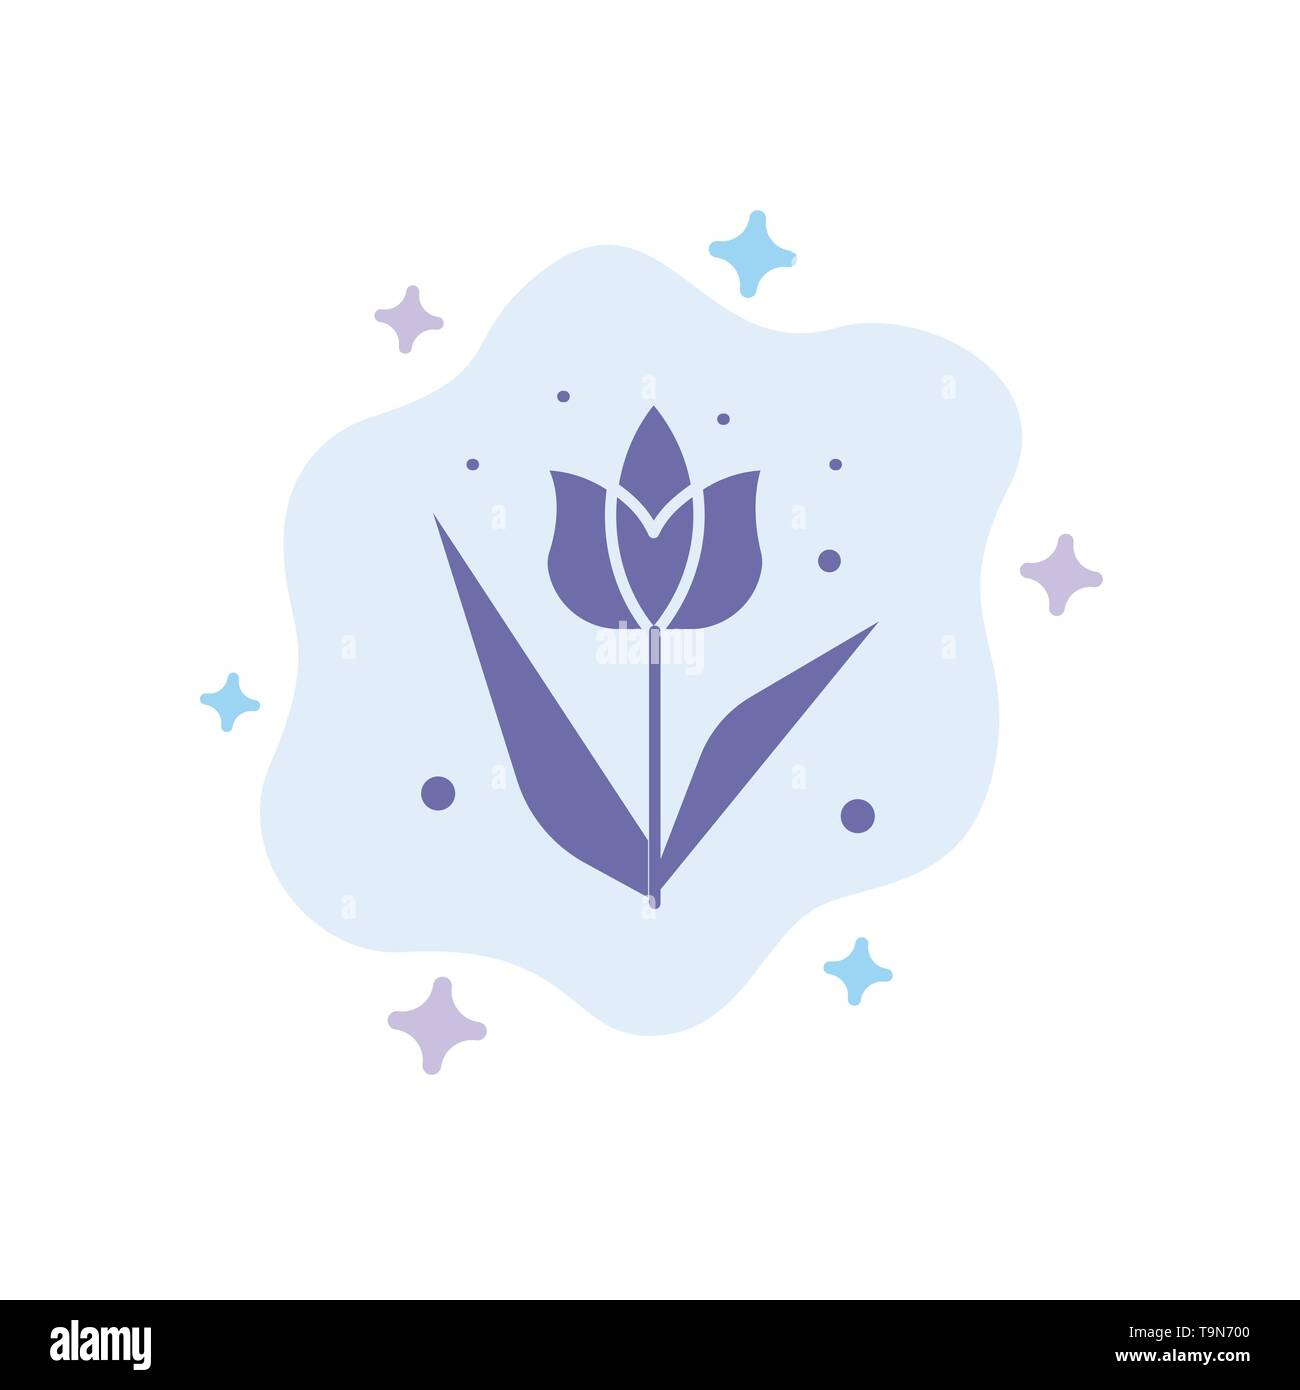 Decoration, Easter, Flower, Plant Blue Icon on Abstract Cloud Background - Stock Image